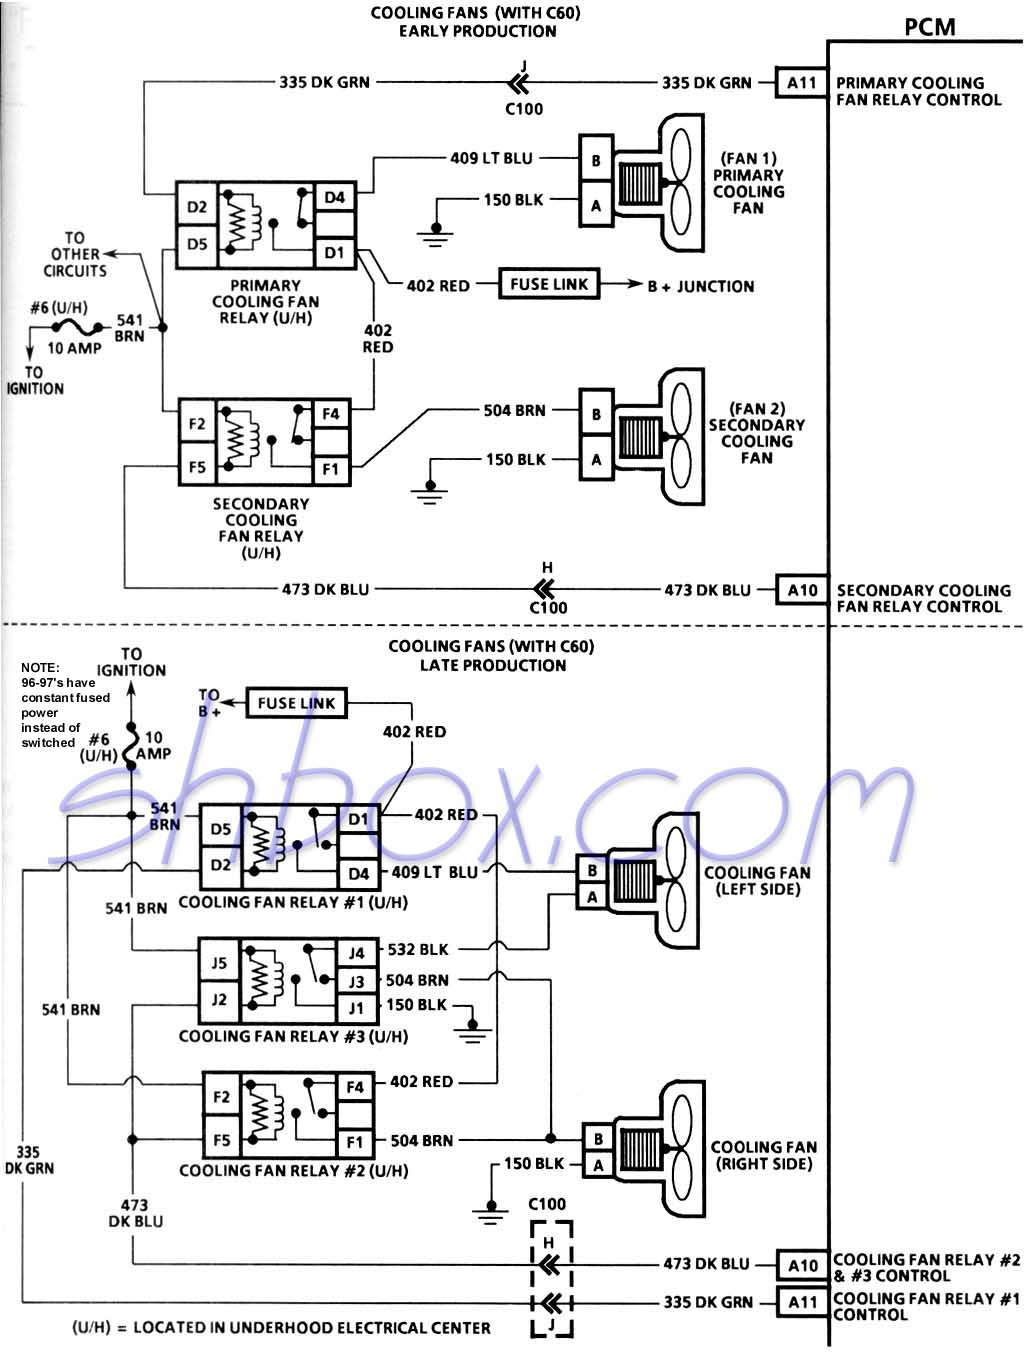 Subaru Forester 2 0 1991 Specs And Images further Cigarette Lighter Outlet Not Working Help Please 2687642 further 02 BASICS Replacing Your Drive Belt as well Discussion C2398 ds596958 additionally Ford Mondeo 2000 Suspension Diagram. on 2009 ford escape fuse diagram